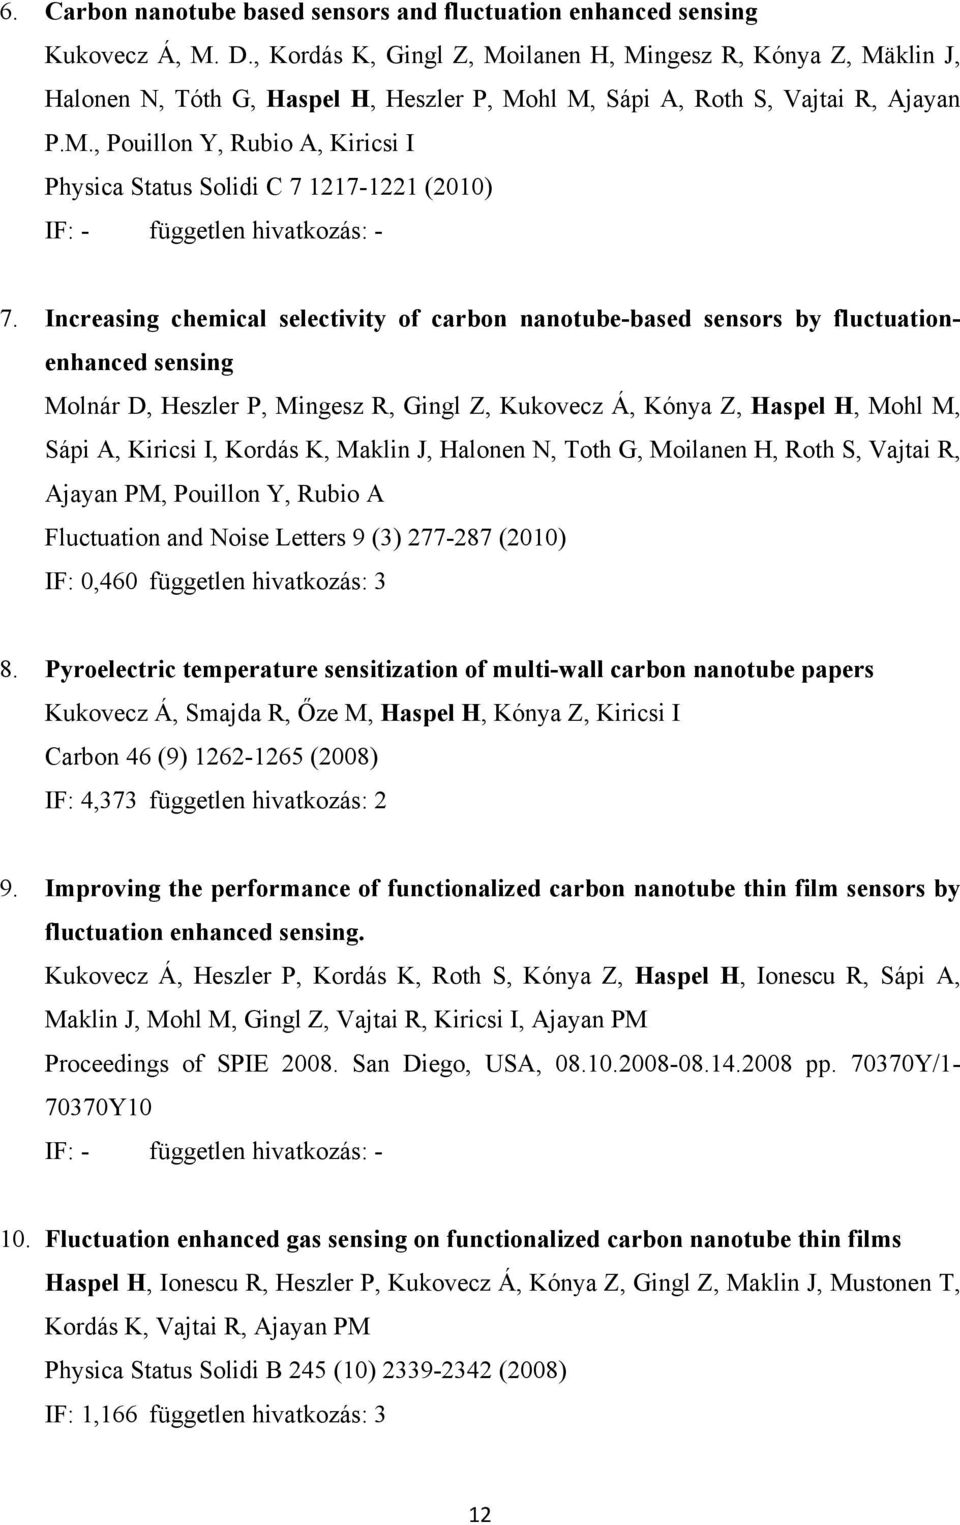 Increasing chemical selectivity of carbon nanotube-based sensors by fluctuationenhanced sensing Molnár D, Heszler P, Mingesz R, Gingl Z, Kukovecz Á, Kónya Z, Haspel H, Mohl M, Sápi A, Kiricsi I,